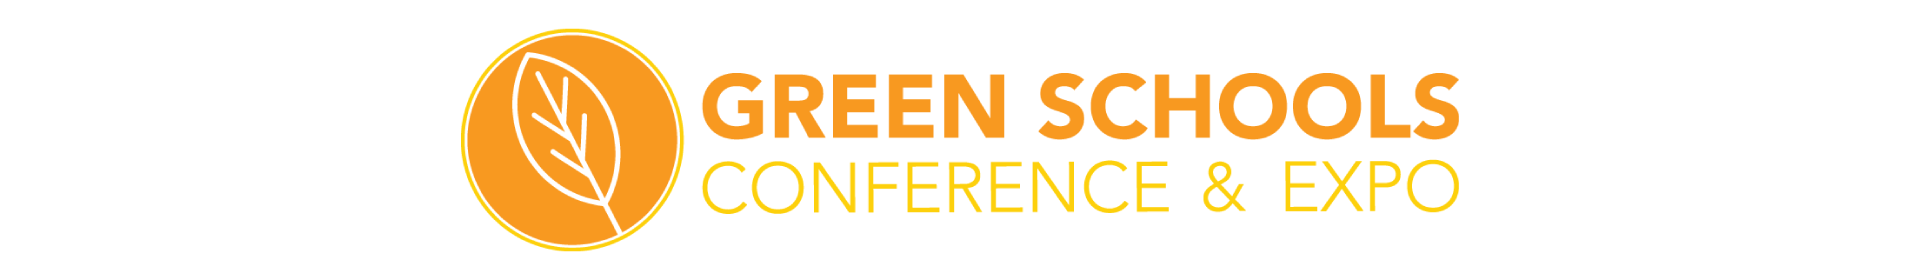 Green Schools Conference & Expo 2020 Event Banner